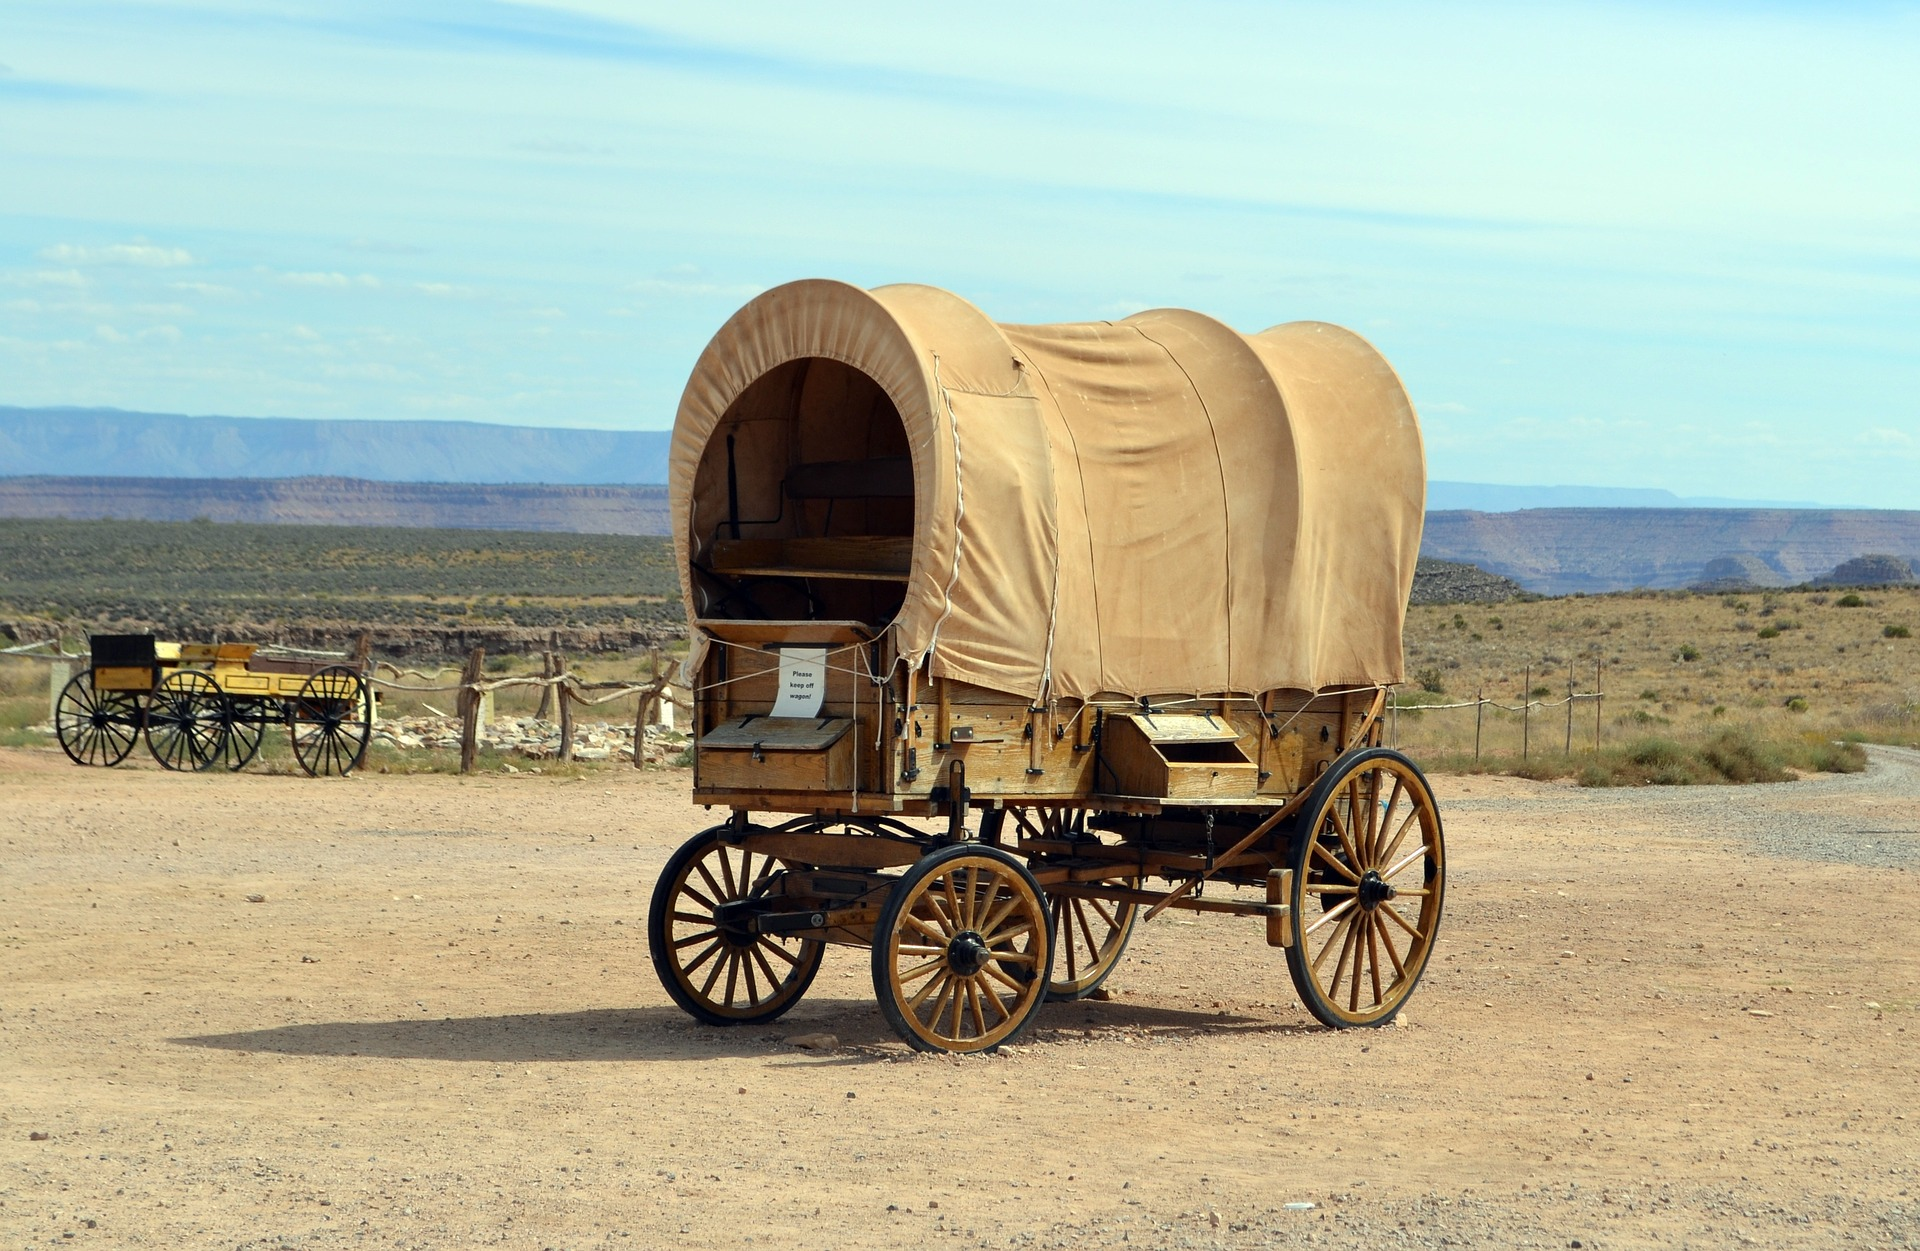 Don't worry about the horse, just load the wagon - Five truths from one simple saying